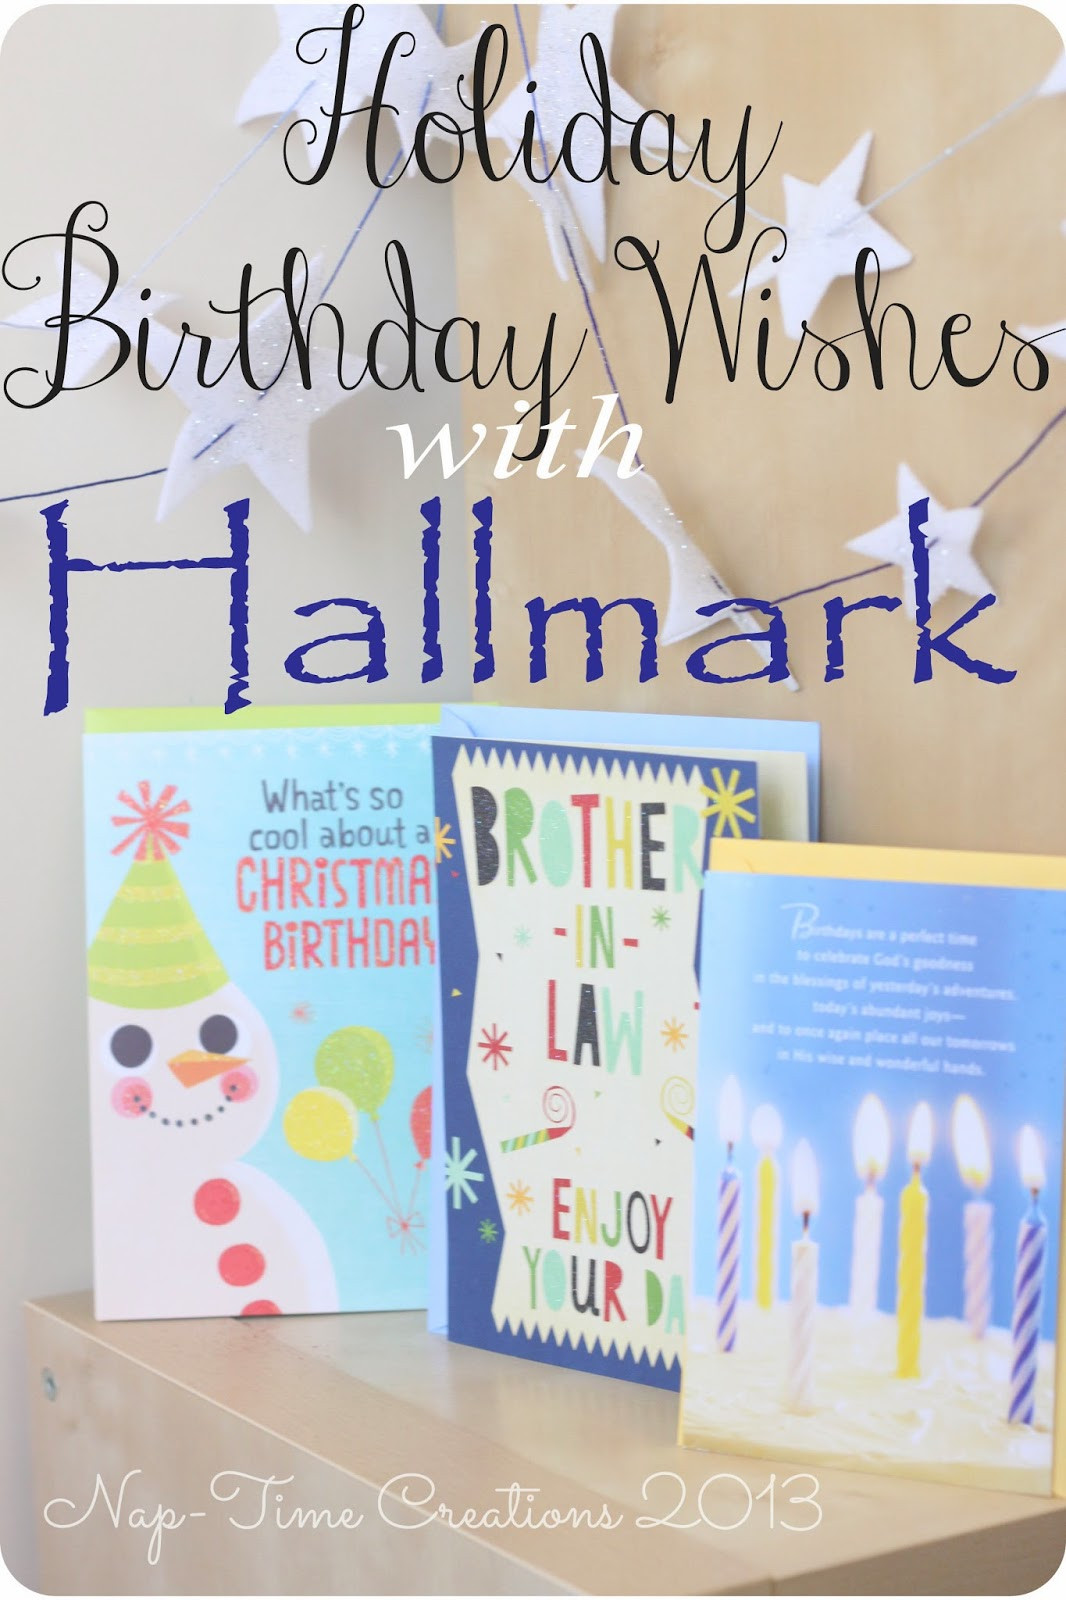 Best ideas about Birthday Wish Hallmark . Save or Pin Holiday Birthday Wishes from Hallmark Life Sew Savory Now.